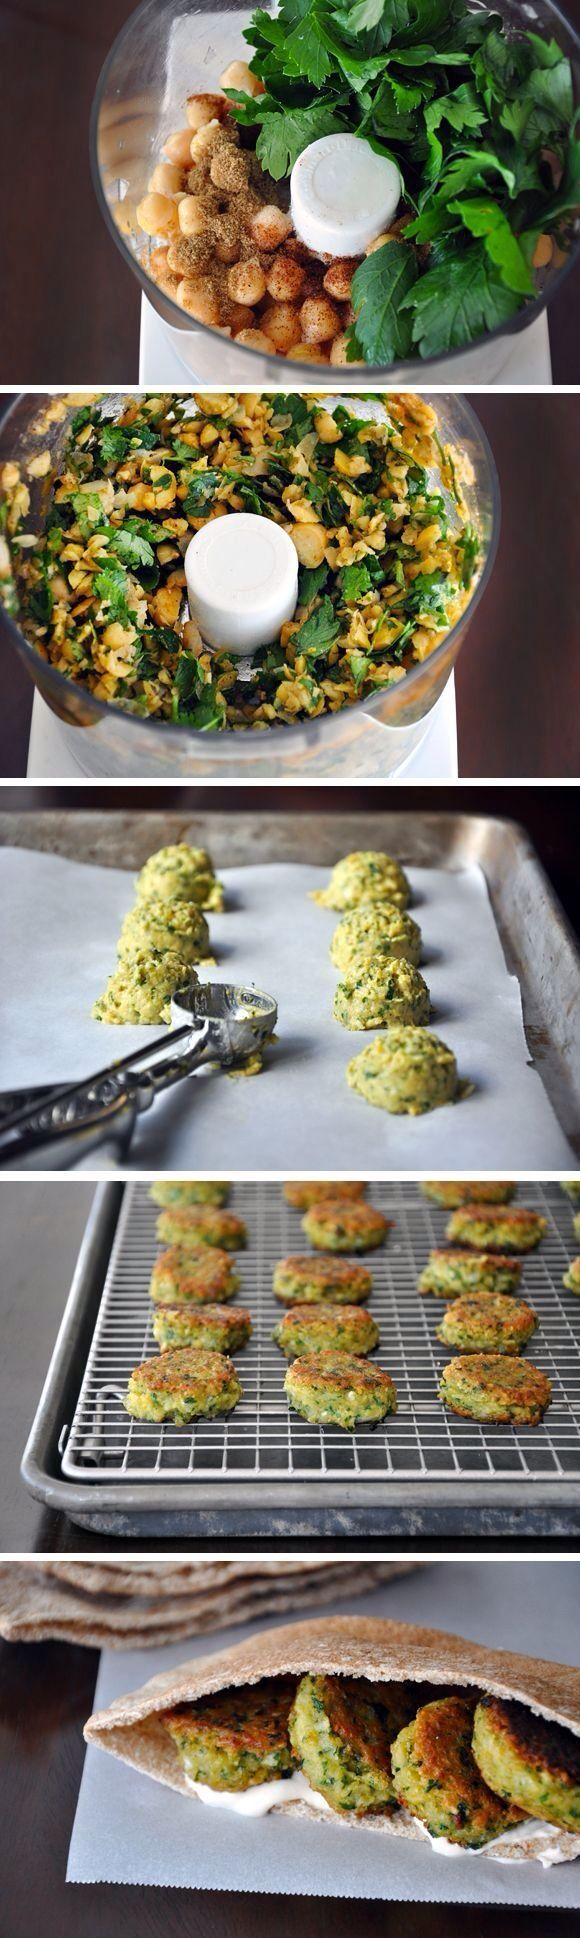 homemade falafel w/ tahini sauce (substitute yogurt in sauce) use almond or coconut flour instead